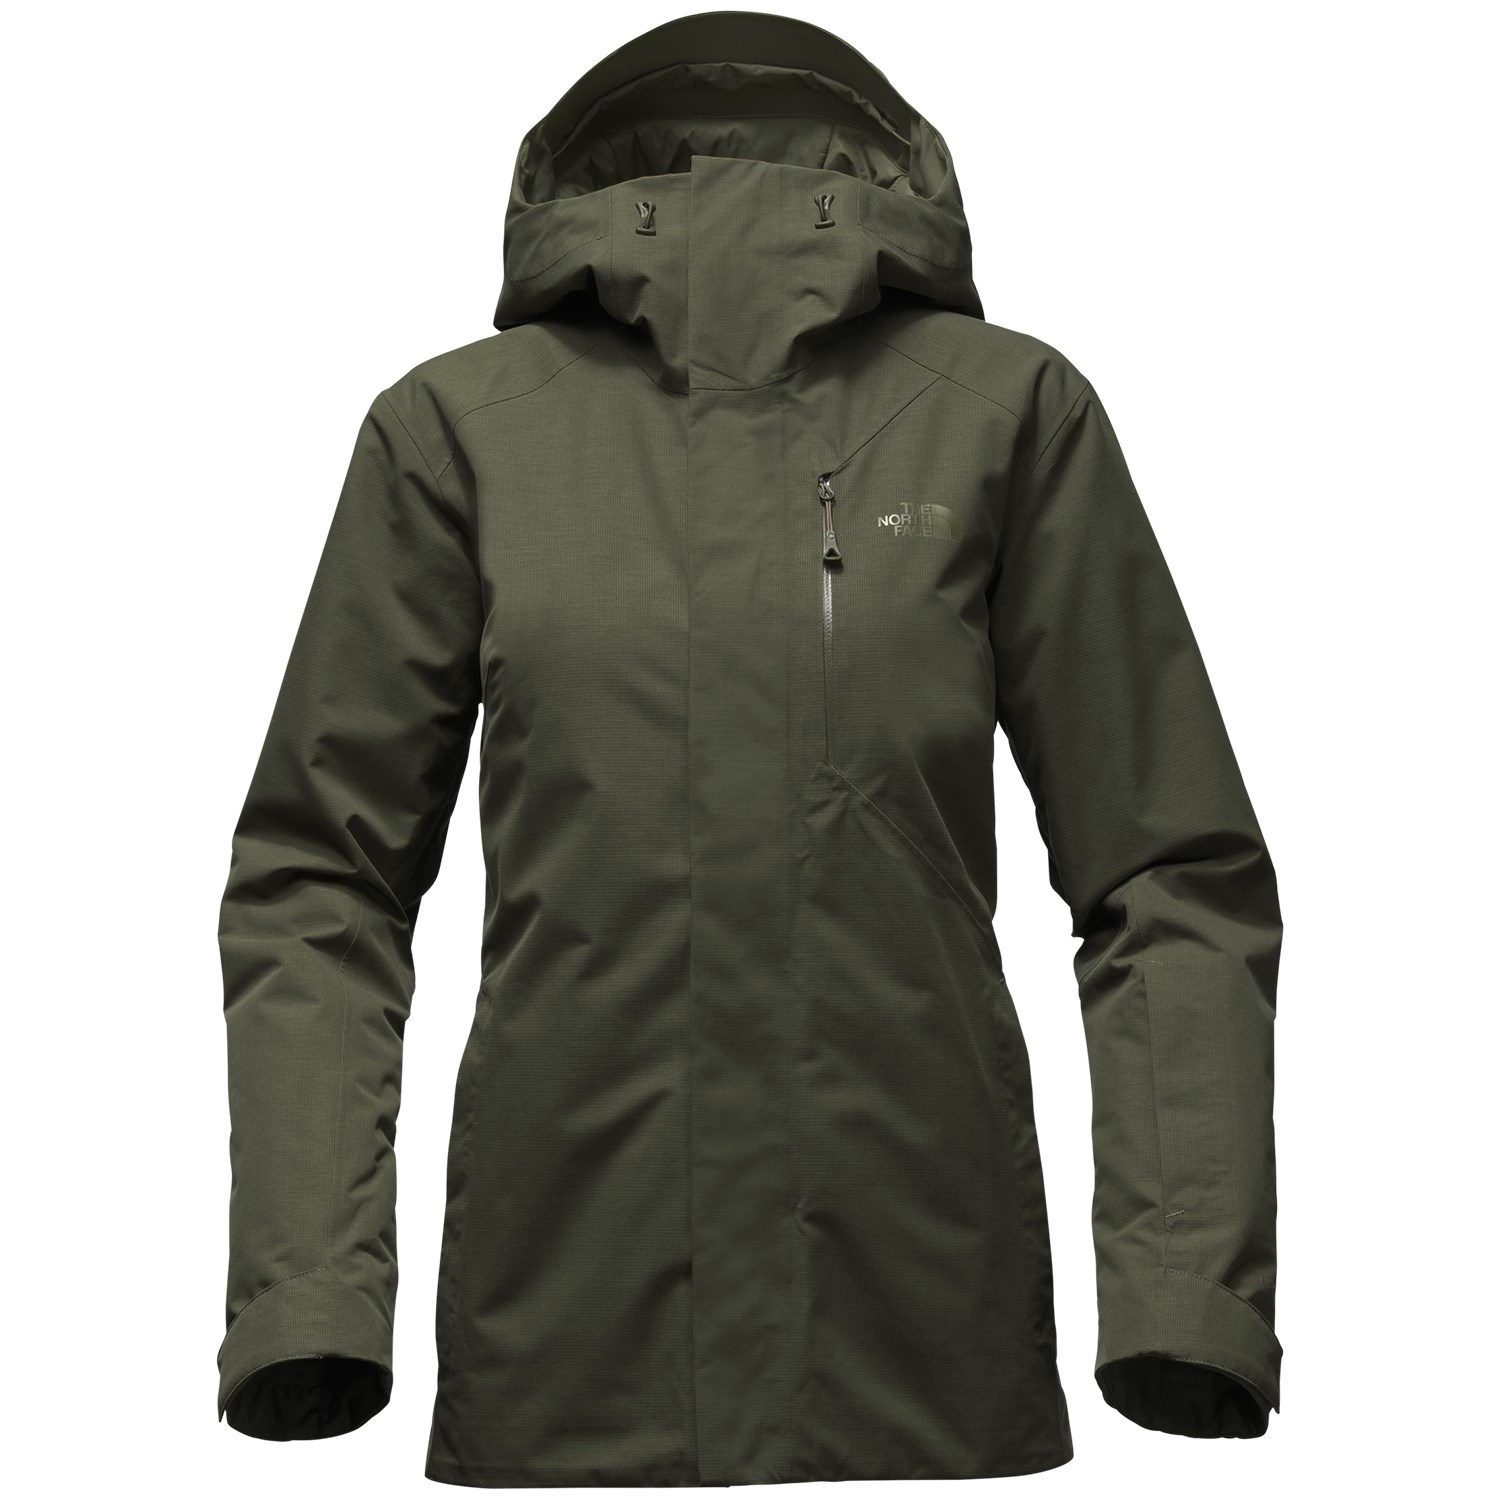 137faceb5 The North Face NFZ Insulated Jacket - Women's | evo